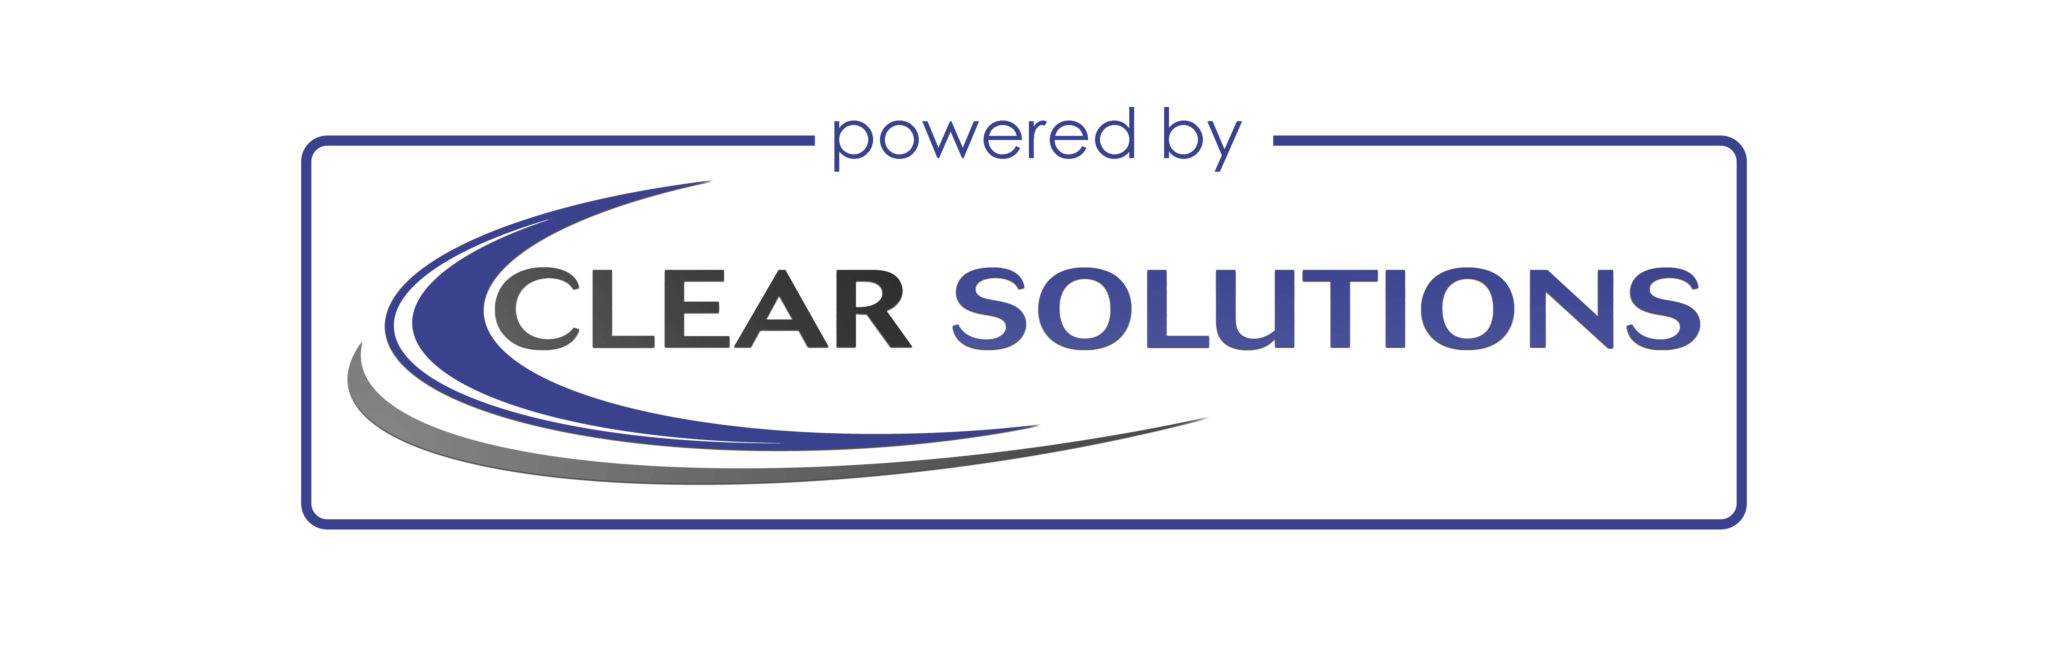 Powered by Clear Solutions